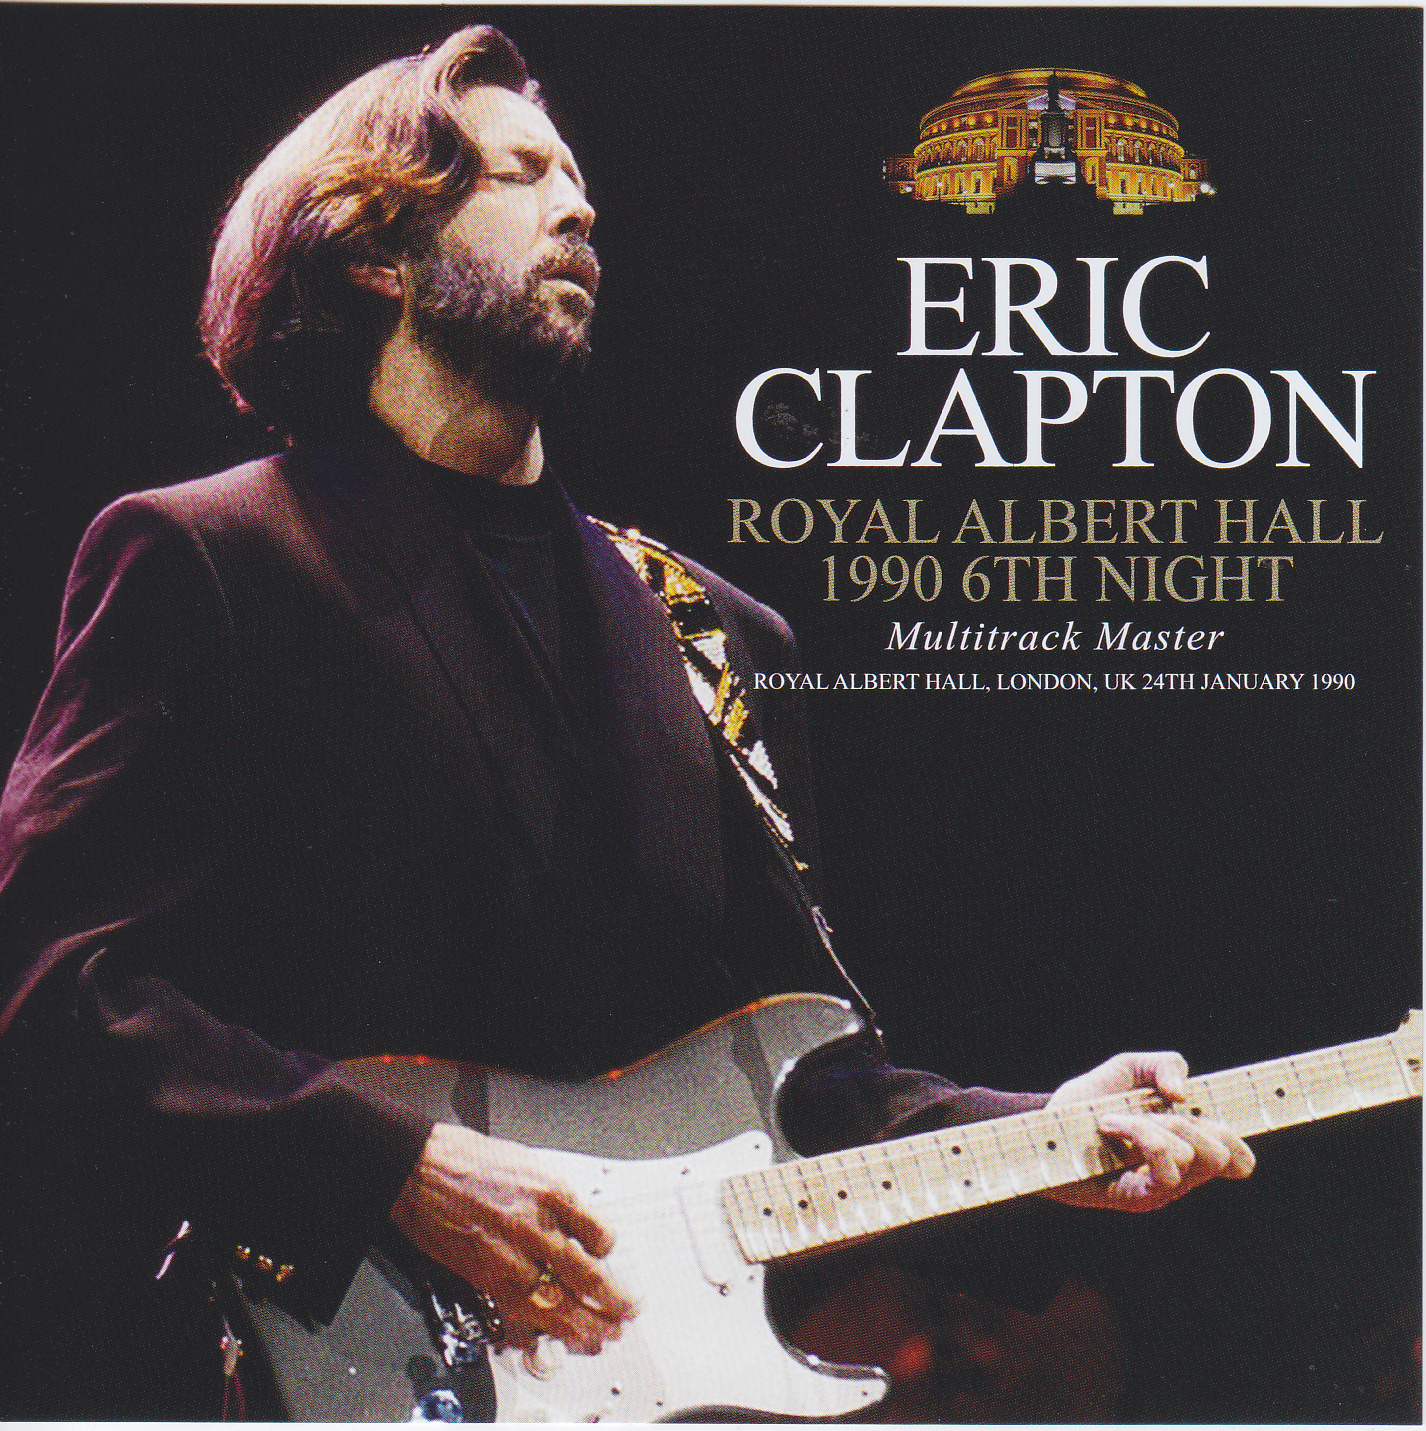 eric clapton royal albert hall 1990 6th night multitrack master 2cd beano 172 discjapan. Black Bedroom Furniture Sets. Home Design Ideas